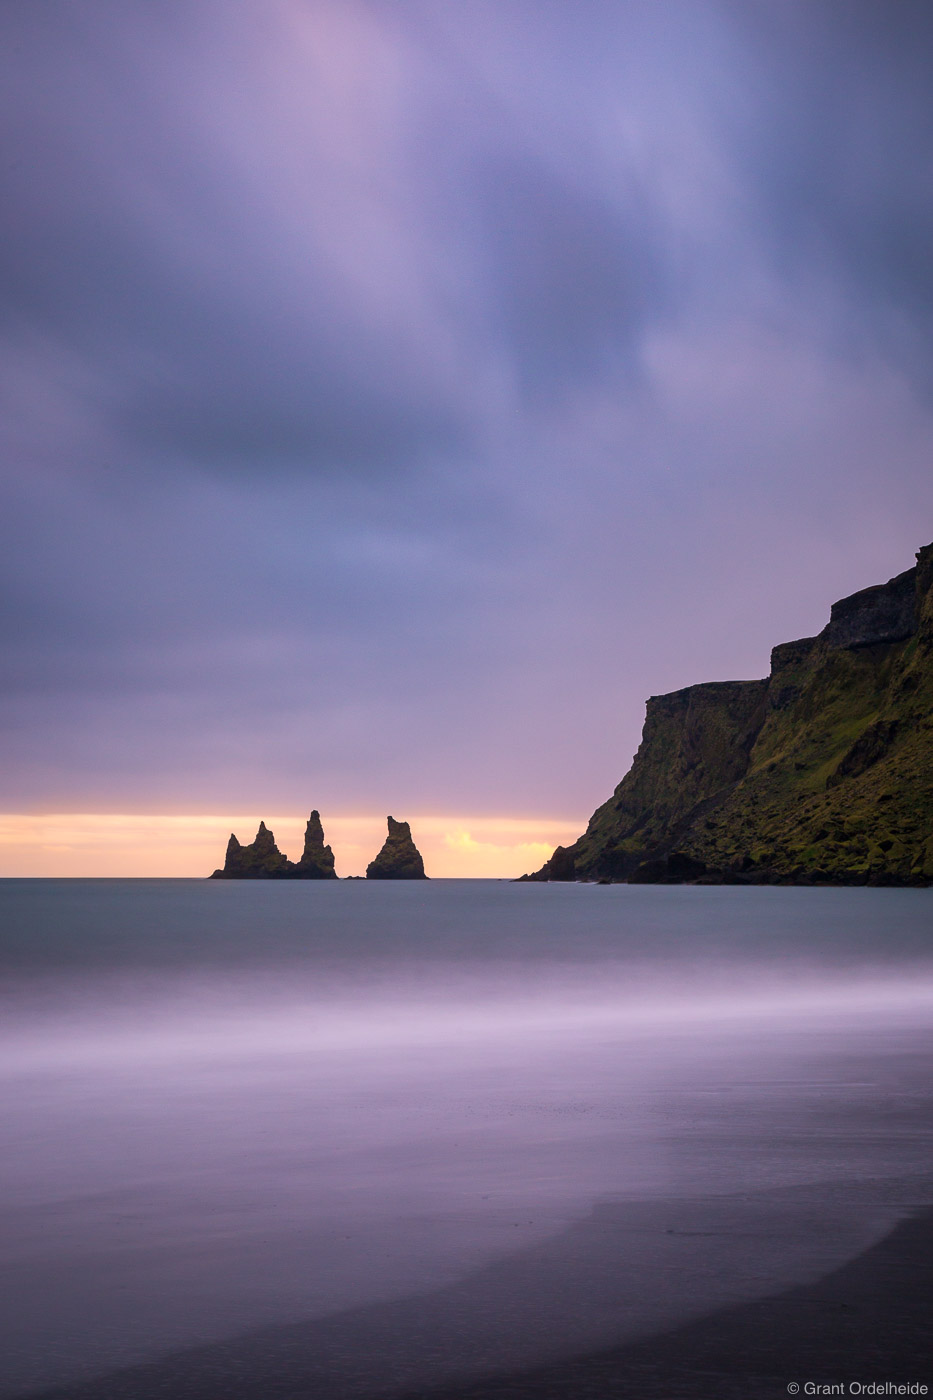 A stormy sunset from the beach along the small town of Vik on Iceland's southern coast.